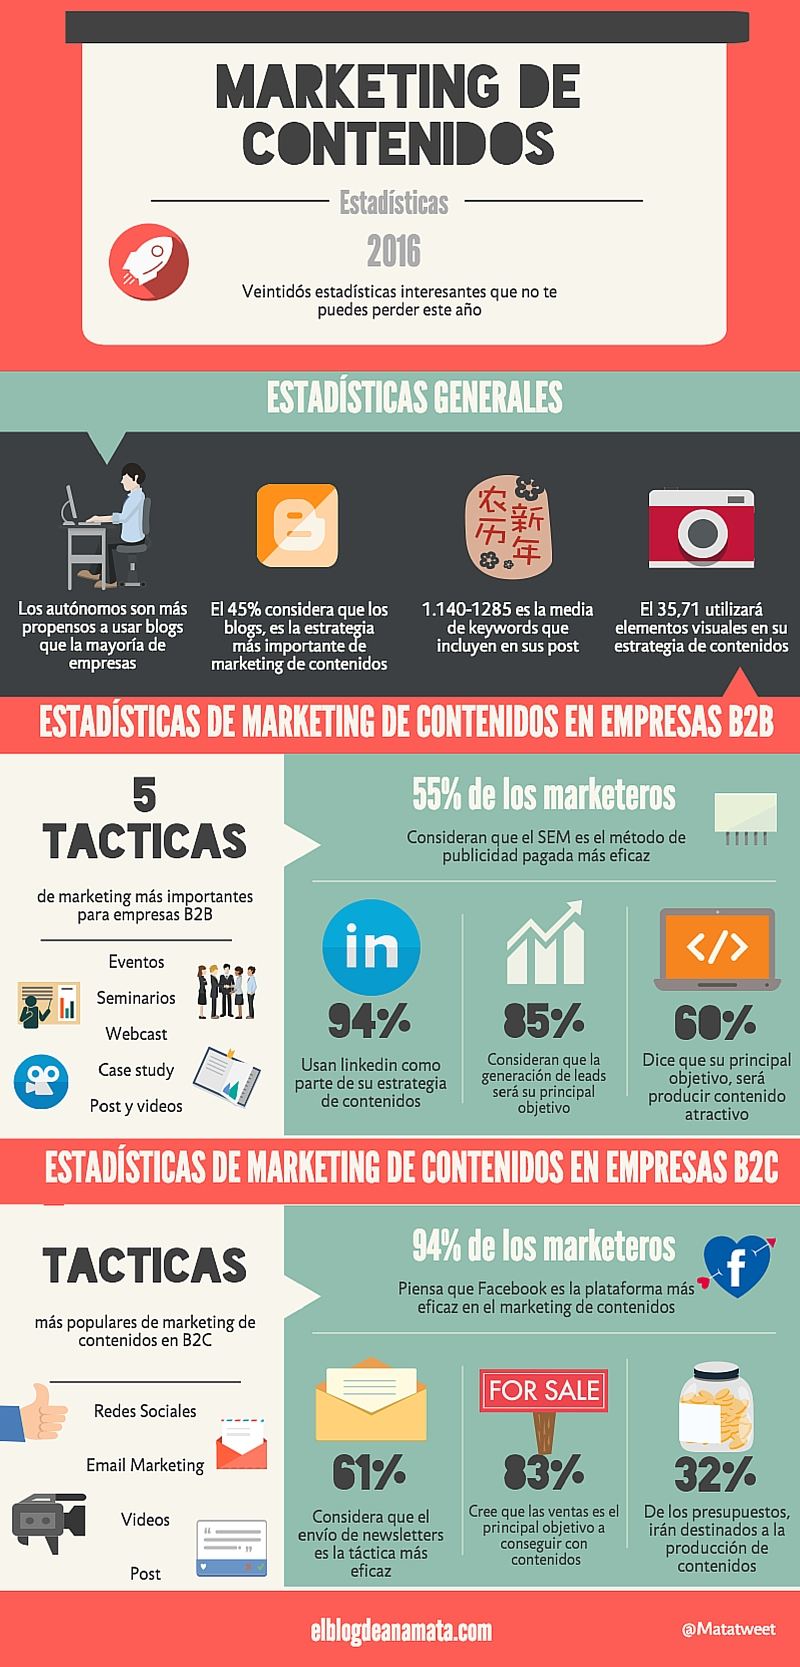 22 estadísticas de marketing de contenidos para 2016 #infografia